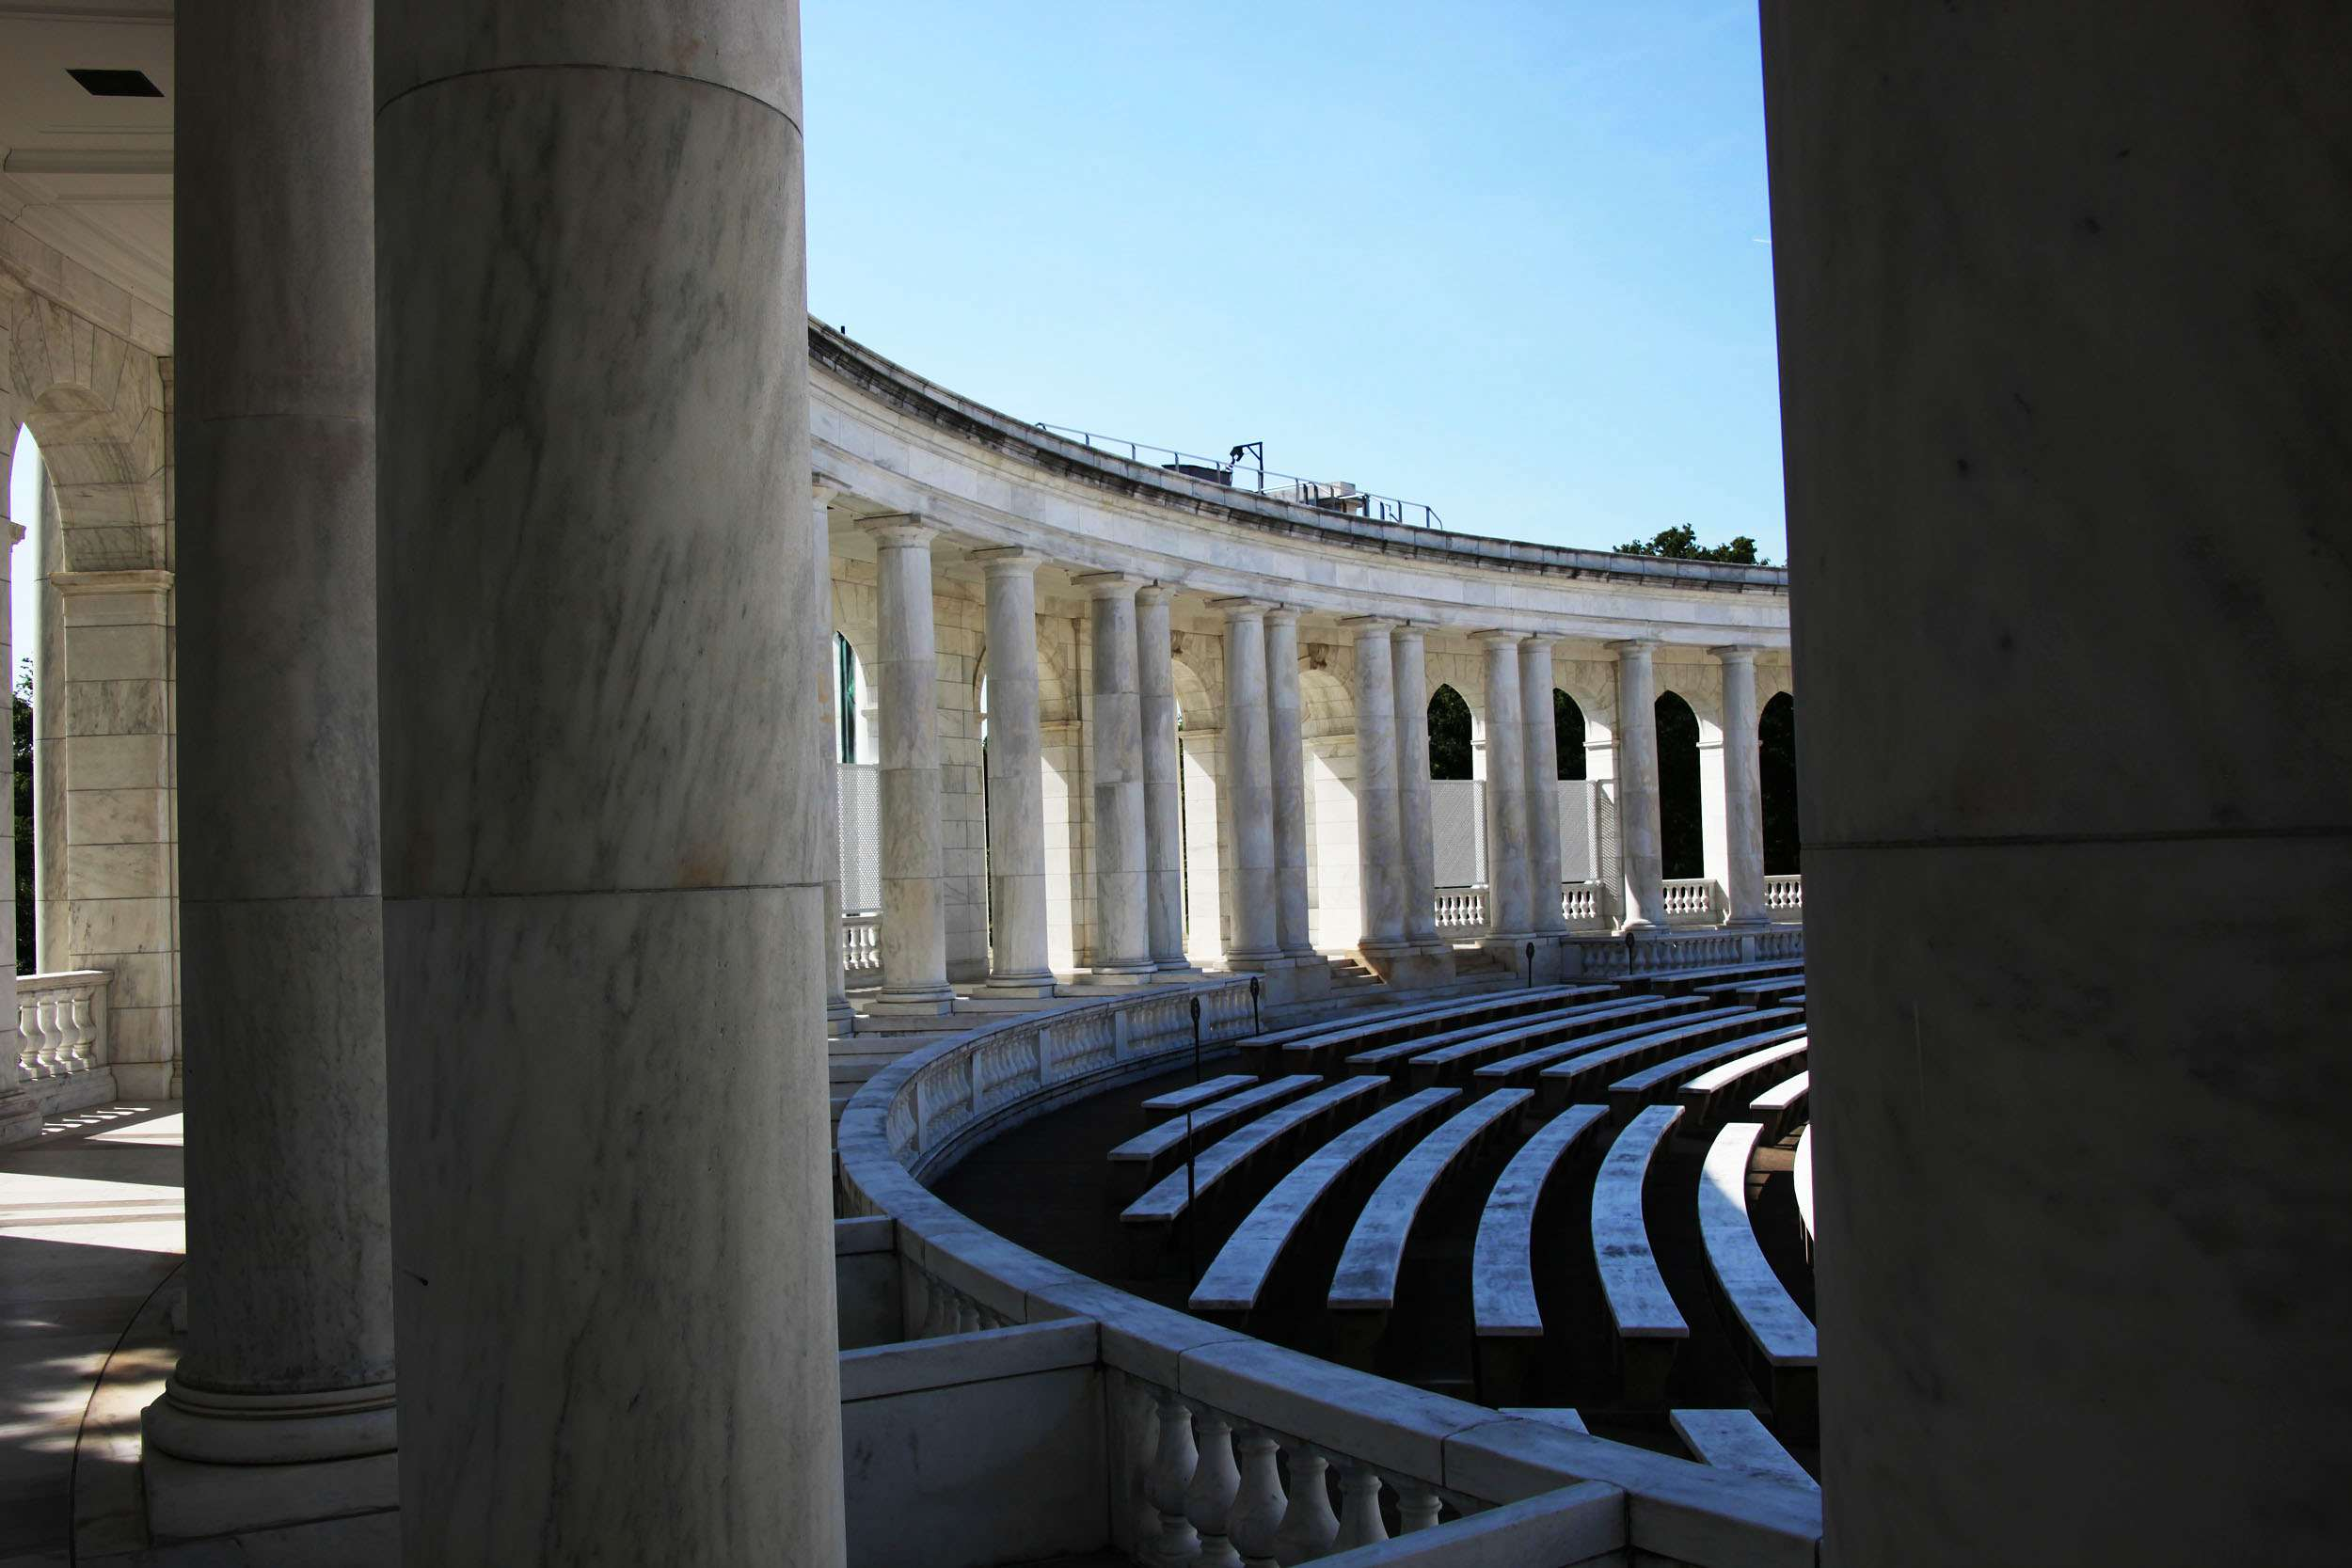 memorial amphitheater6 The Memorial Amphitheater at Arlington National Cemetery